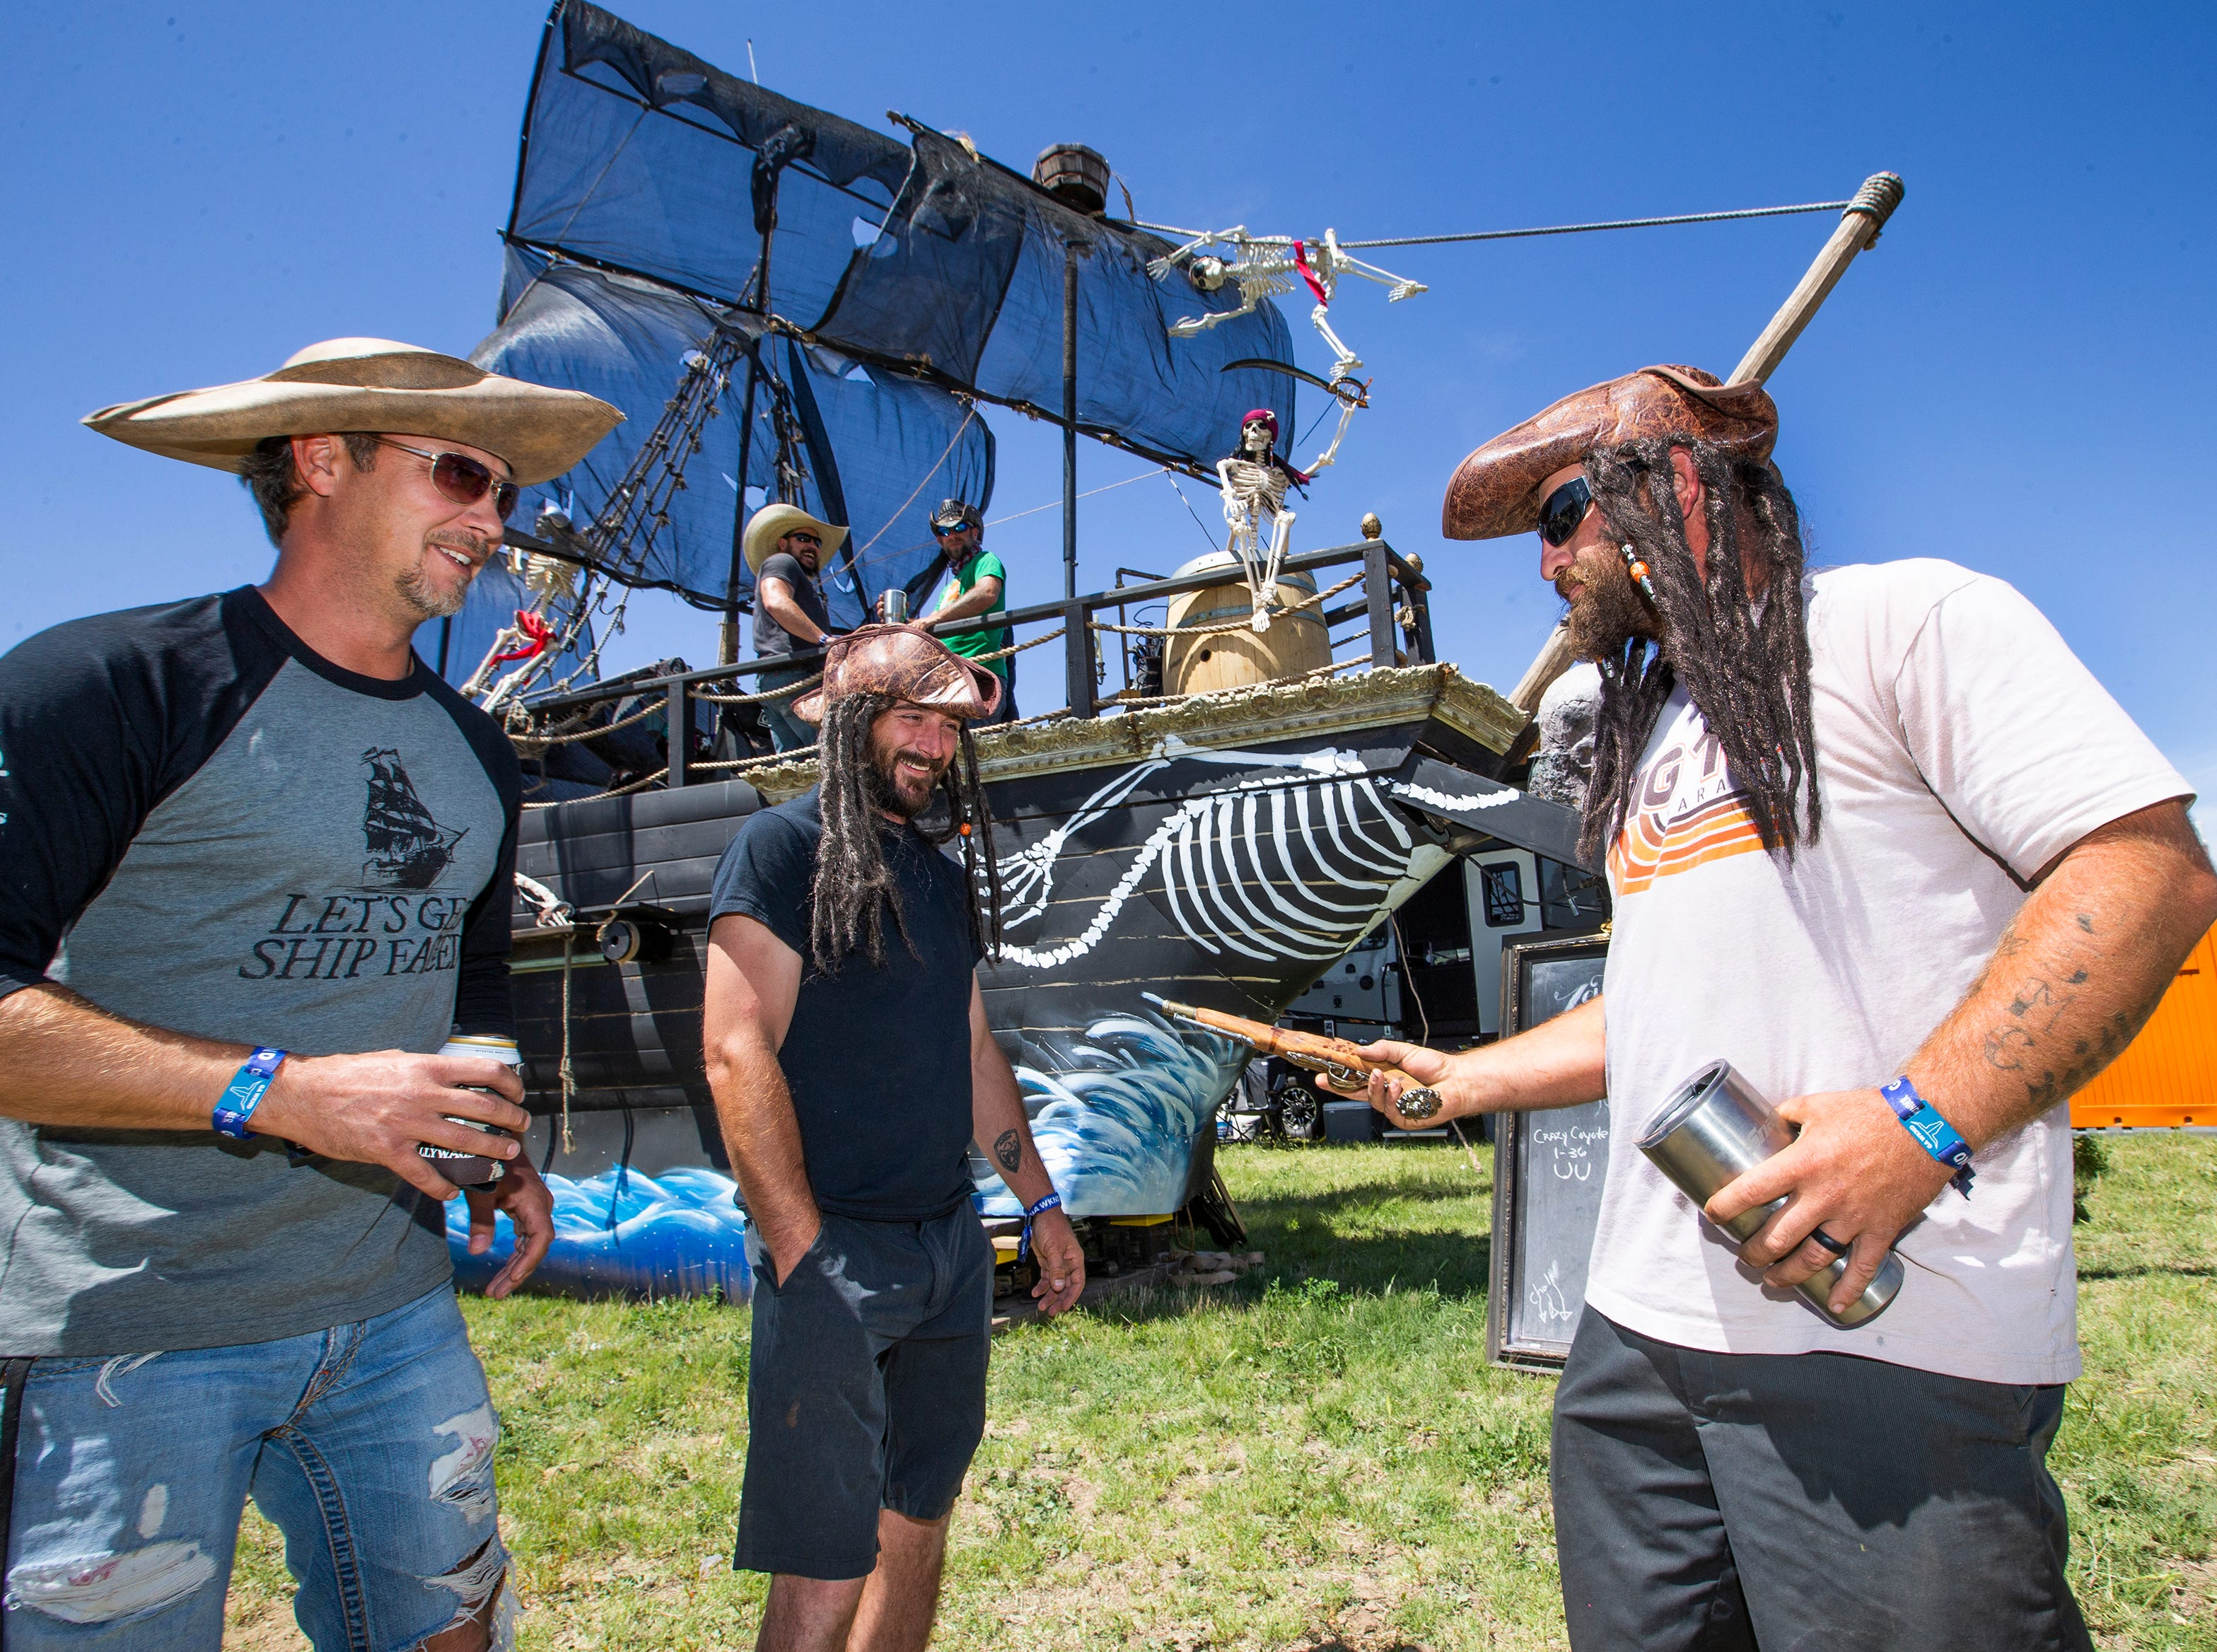 A pirate ship, built by Sean Franklin, 41, Queen Creek, left, Rich Reeves, 32, Mesa, and Christian Zeitler, 34, Queen Creek, is a hit at Country Thunder Arizona 2019 near Florence, Thursday, April 11, 2019. The ship has cannons that shoot water and a bar.